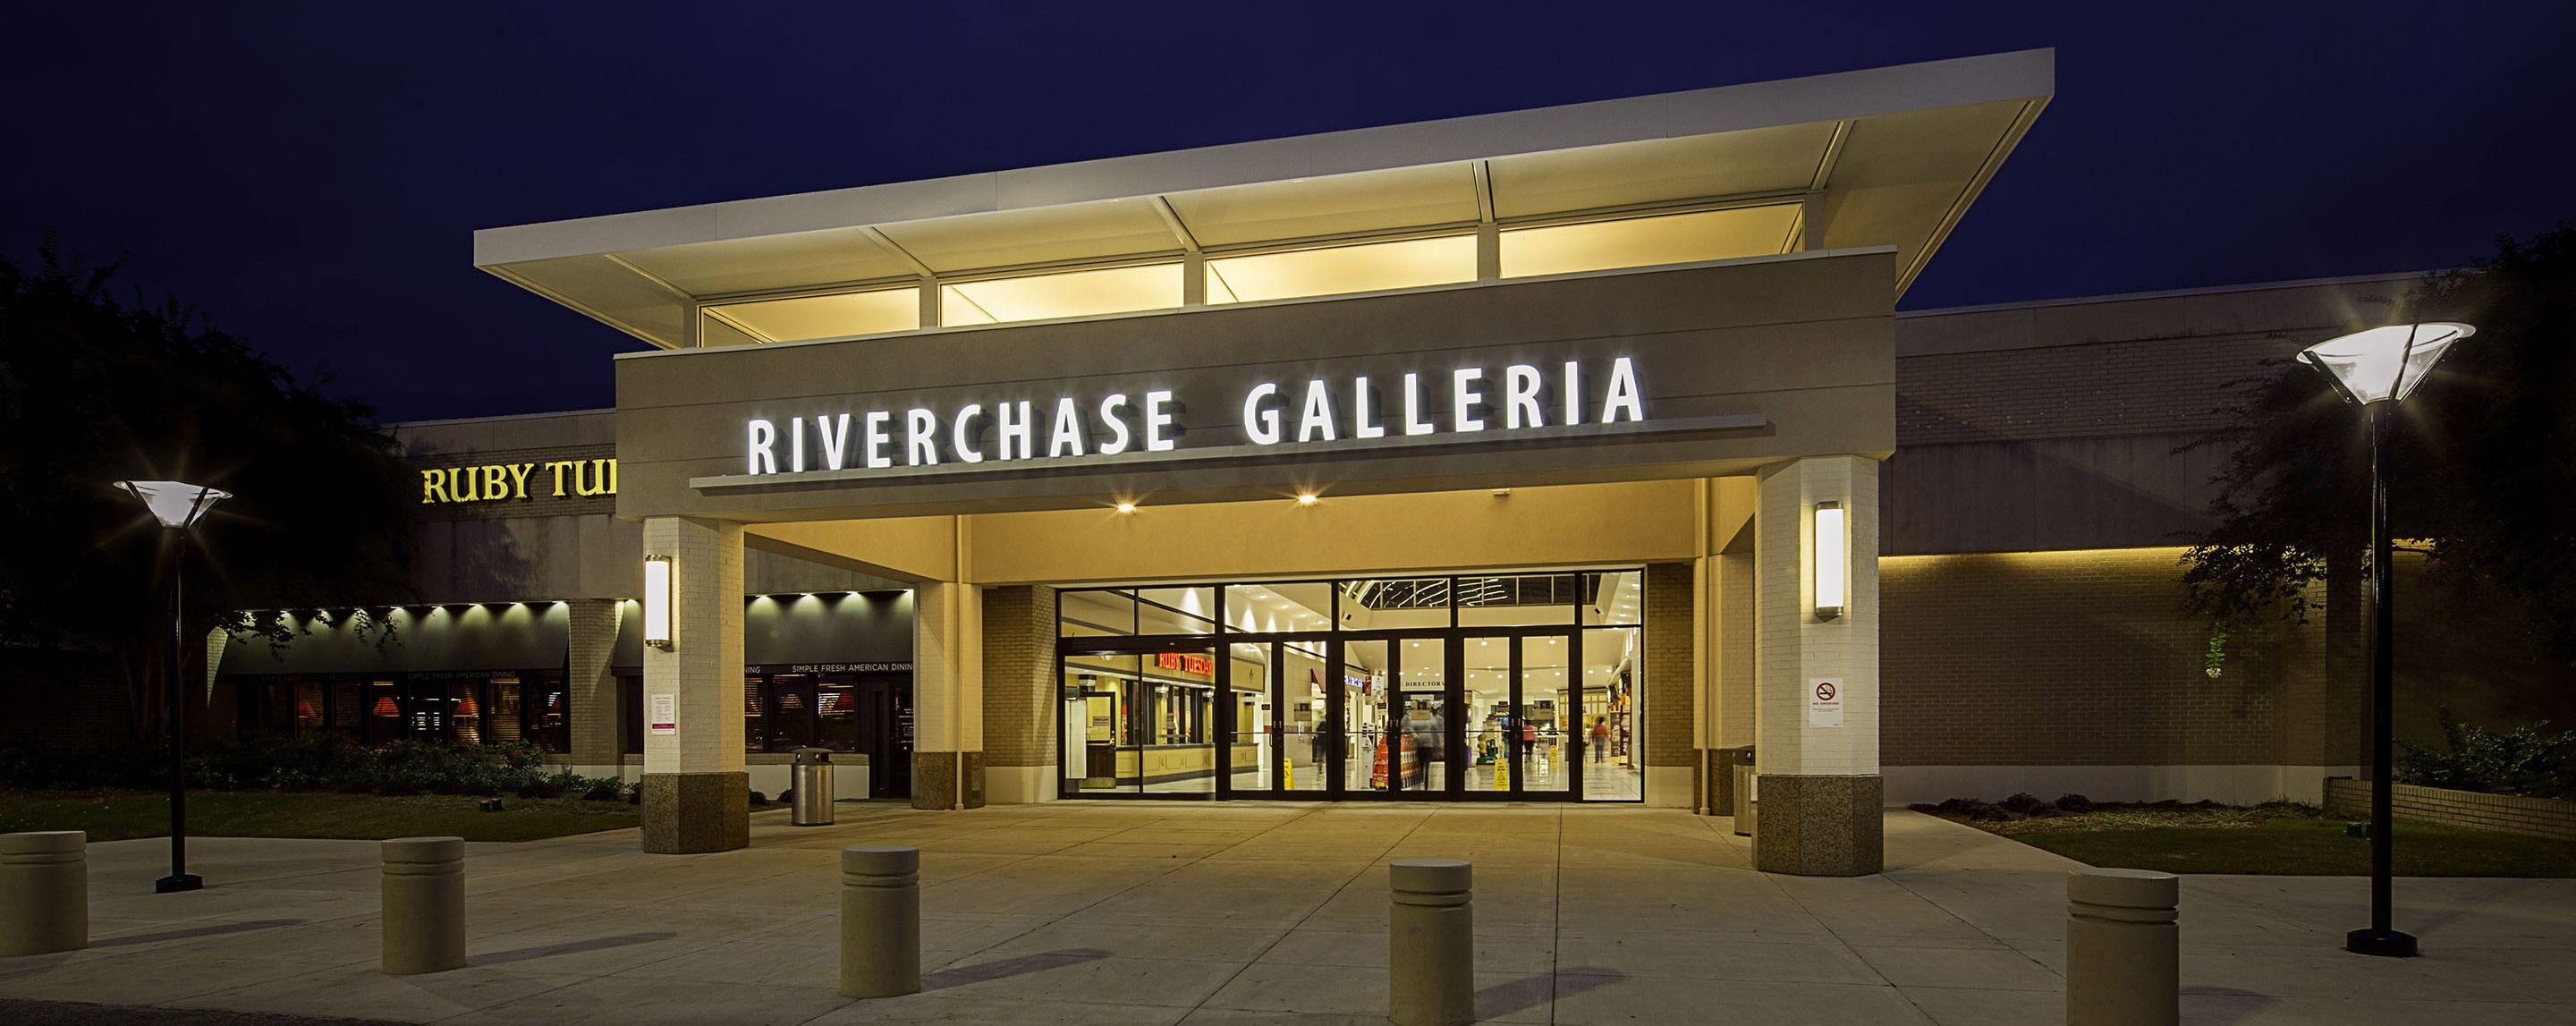 """The sign saying """"Riverchase Galleria"""" is lit up at night. Near the entrance to the building is a Rub"""